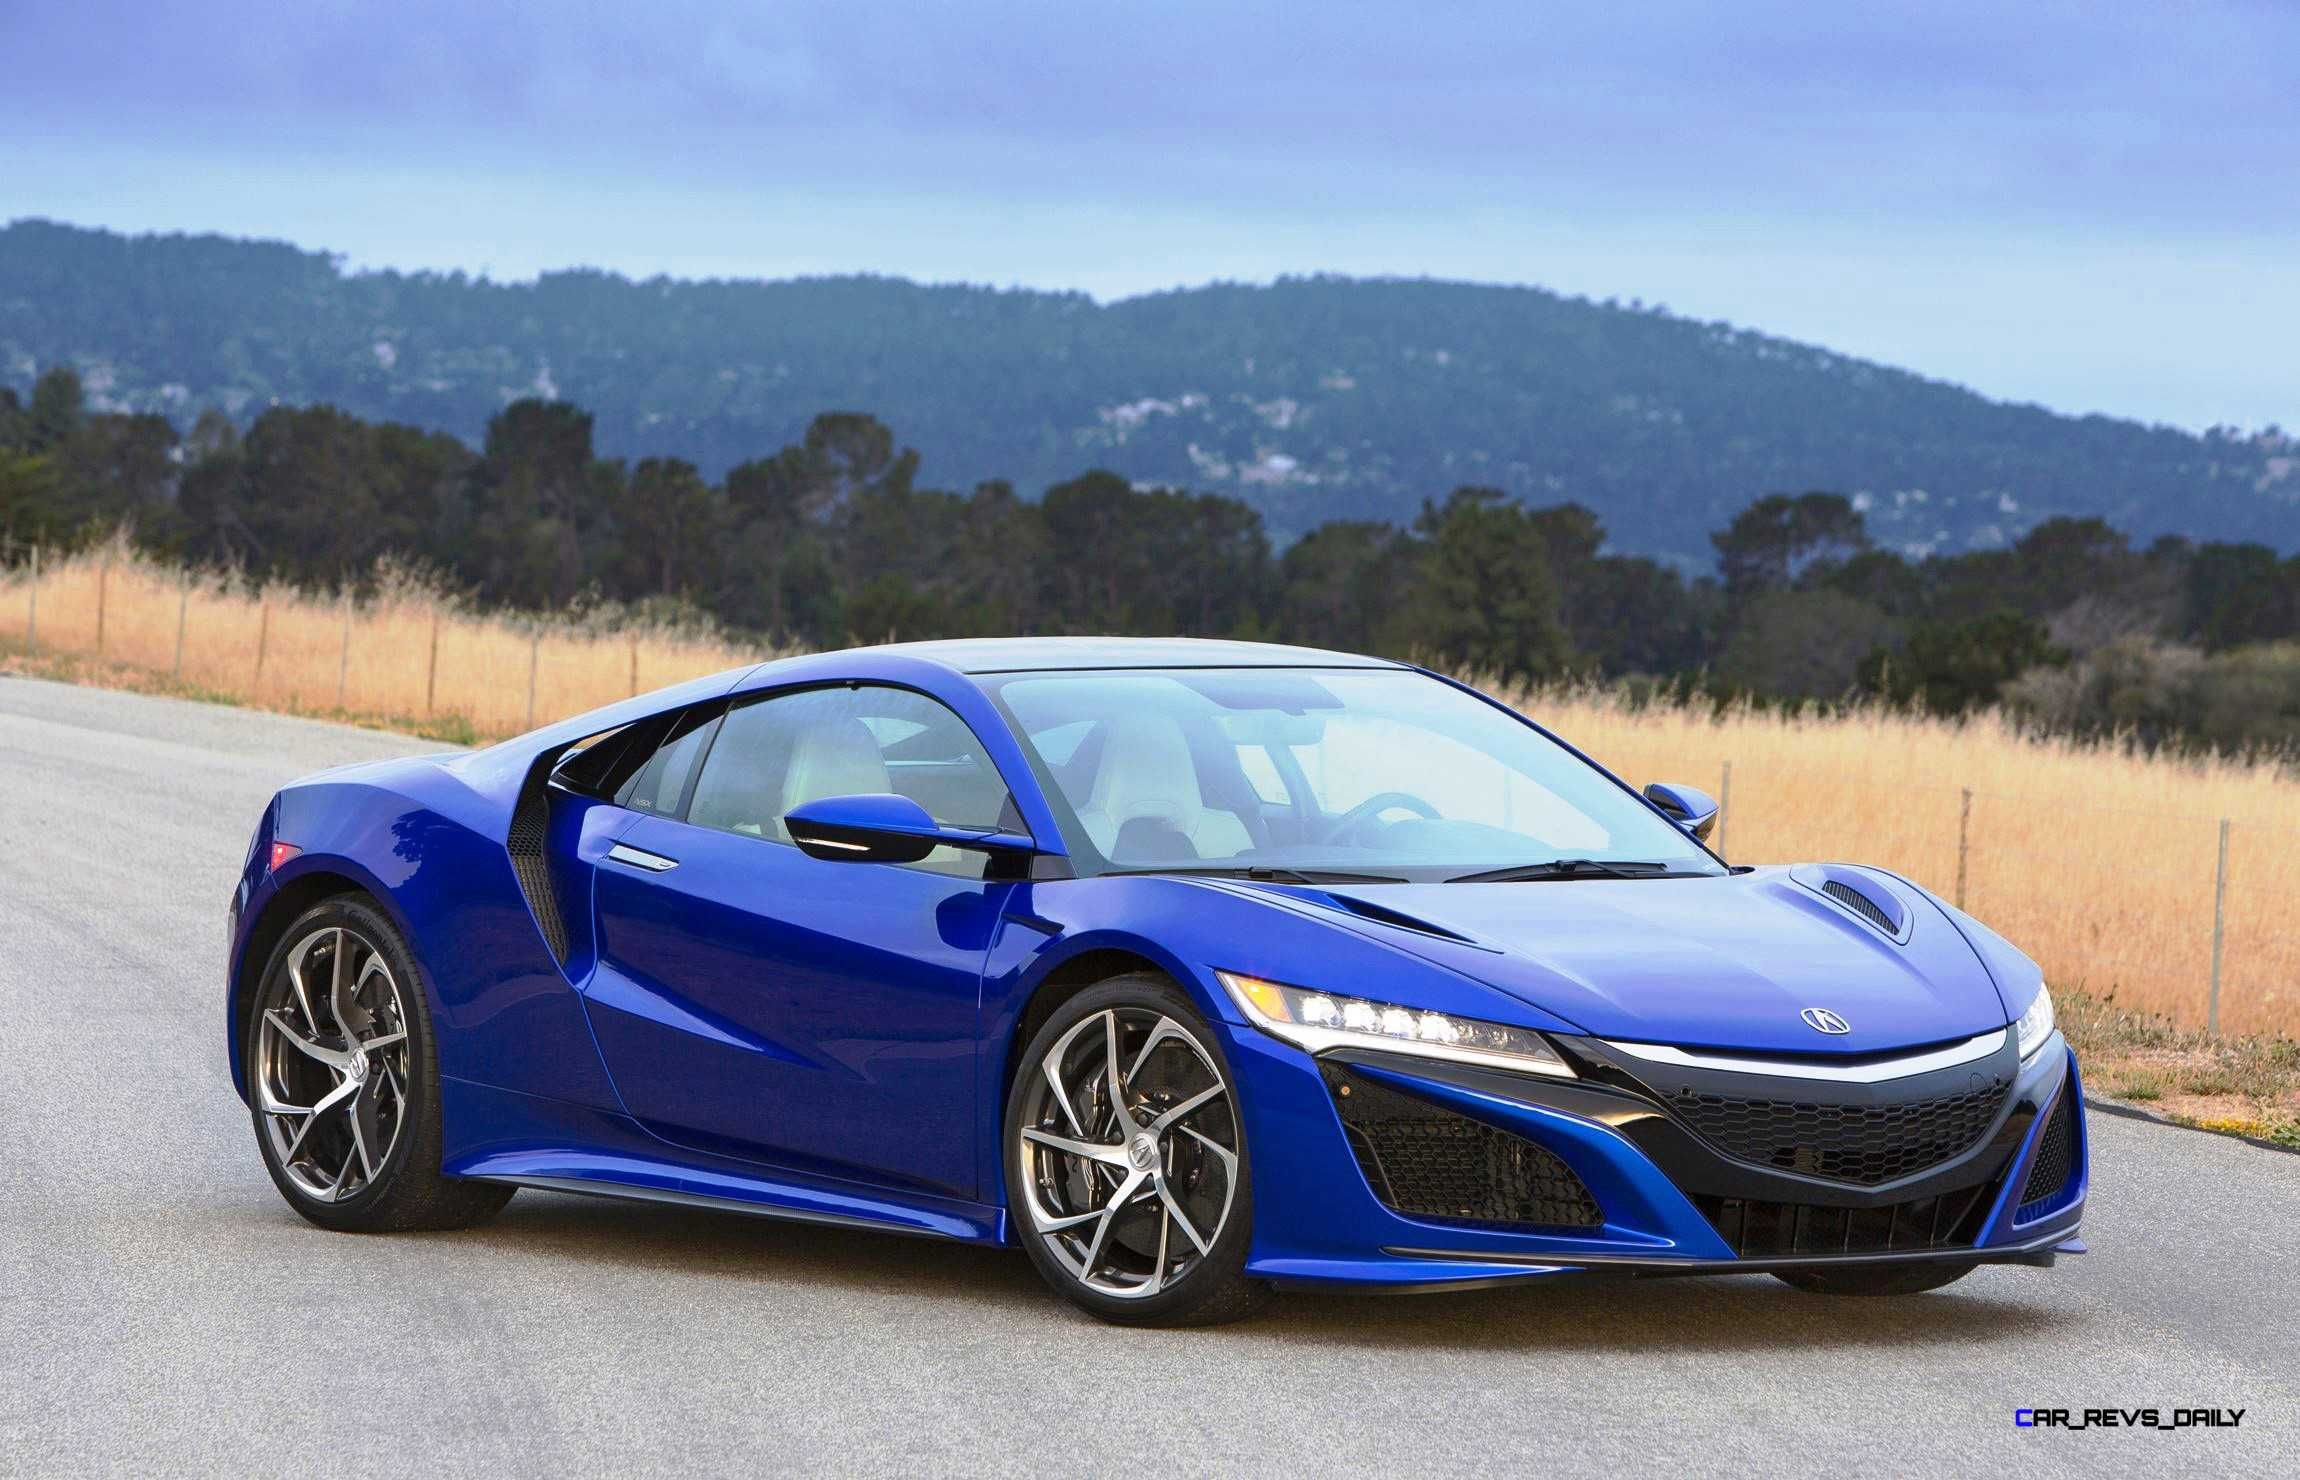 New Acura Nsx In Nouvelle Blue Acura Nsx Nsx 2017 Acura Nsx